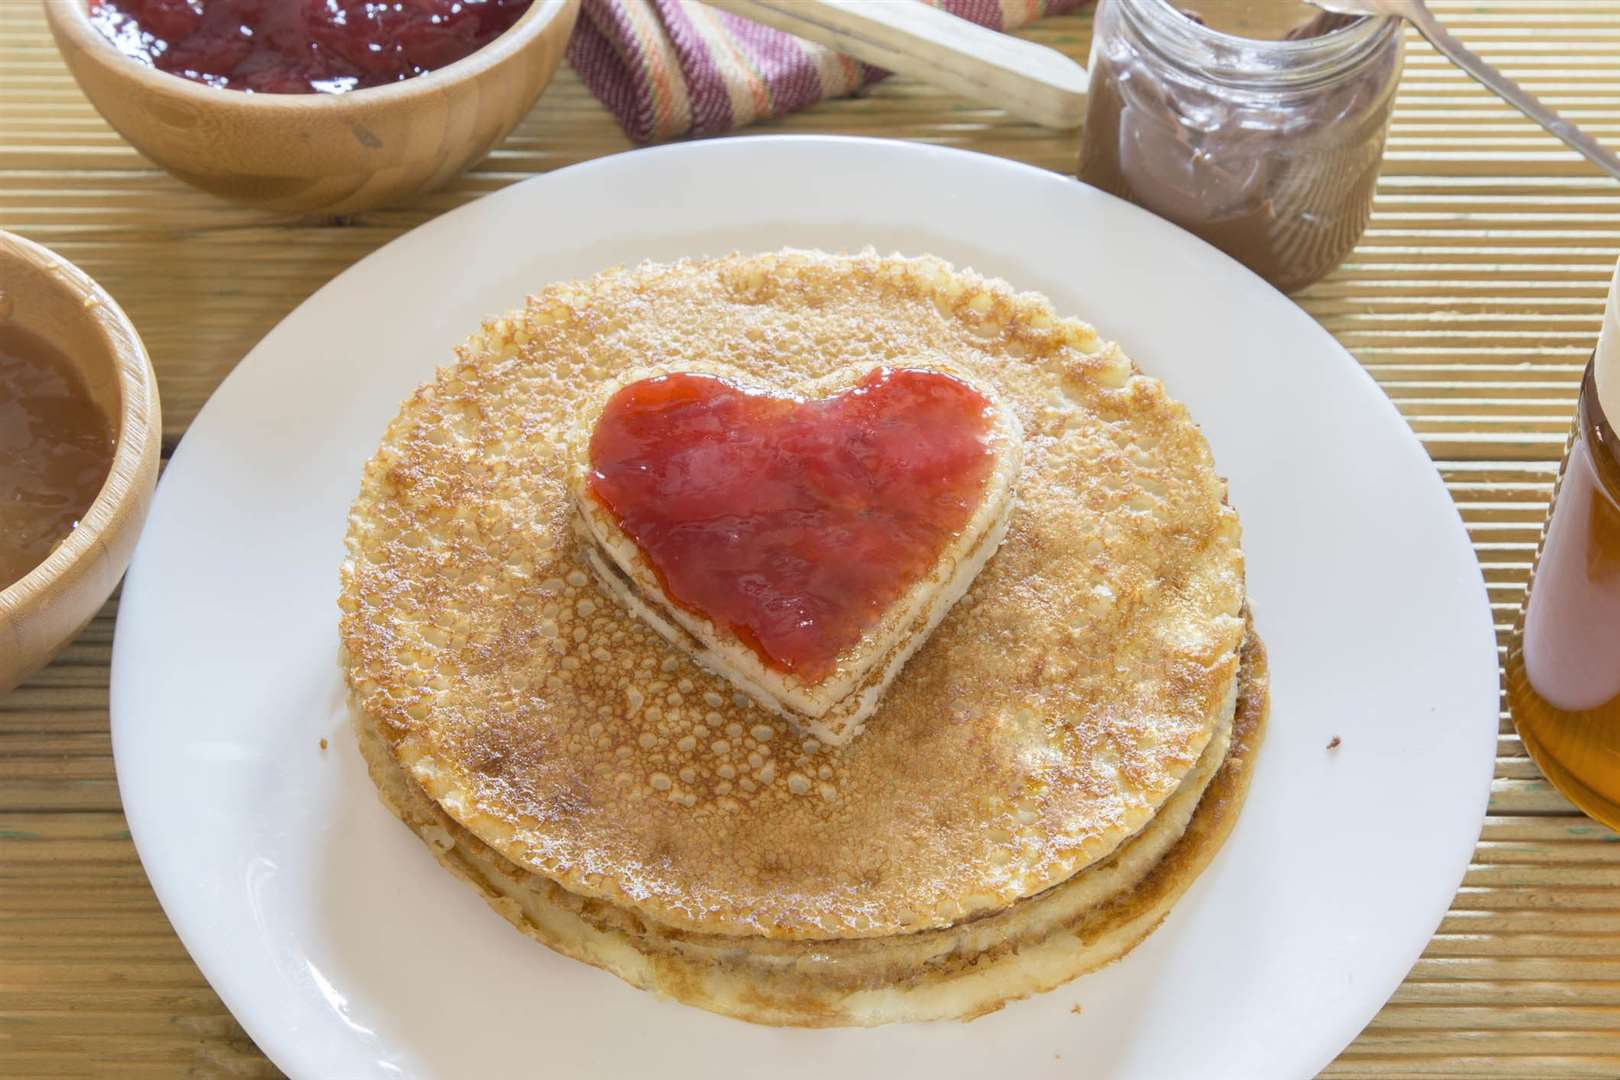 What topping do you like best on your pancakes?